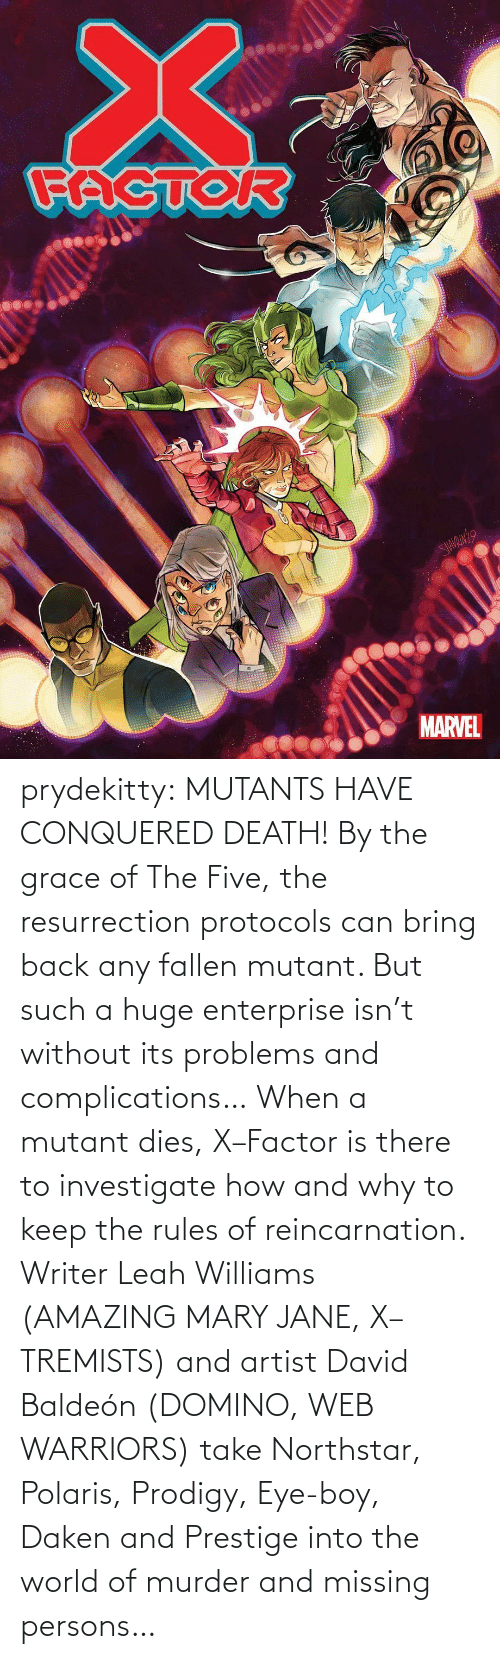 problems: prydekitty:  MUTANTS HAVE CONQUERED DEATH! By the grace of The Five, the resurrection protocols can bring back any fallen mutant. But such a huge enterprise isn't without its problems and complications… When a mutant dies, X–Factor is there to investigate how and why to keep the rules of reincarnation. Writer Leah Williams (AMAZING MARY JANE, X–TREMISTS) and artist David Baldeón (DOMINO, WEB WARRIORS) take Northstar, Polaris, Prodigy, Eye-boy, Daken and Prestige into the world of murder and missing persons…